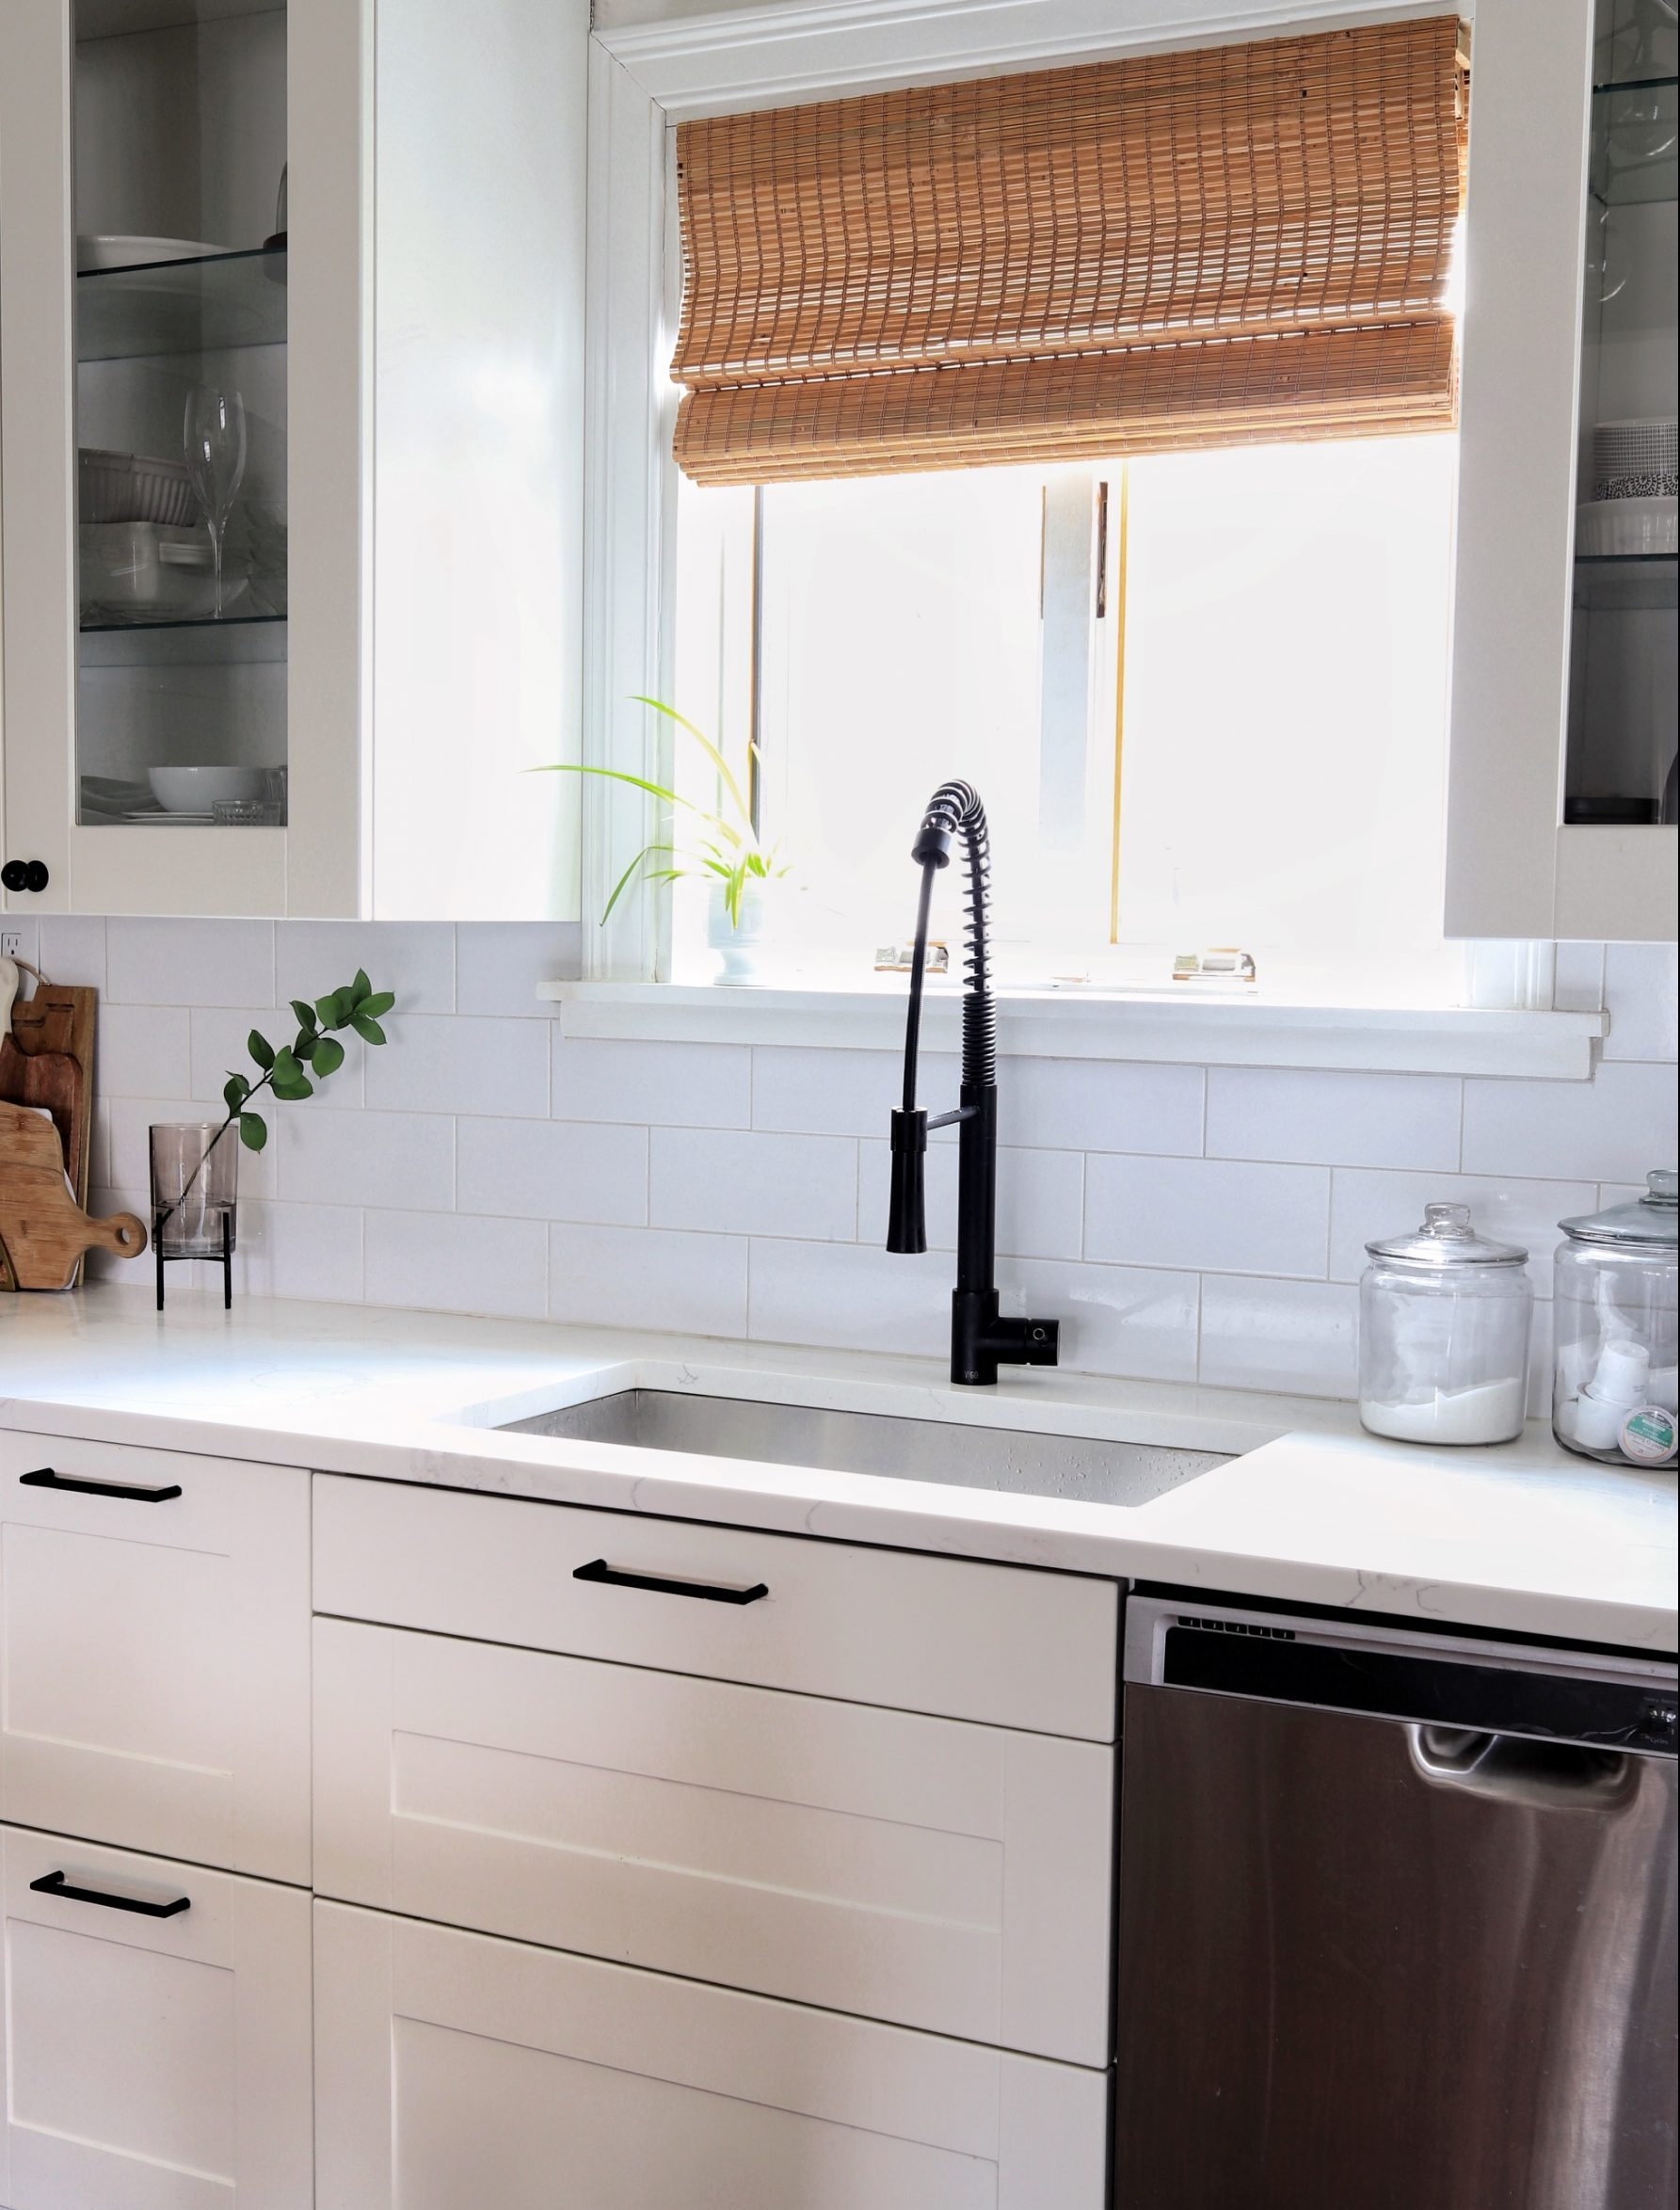 window treatments woven shades in kitchen